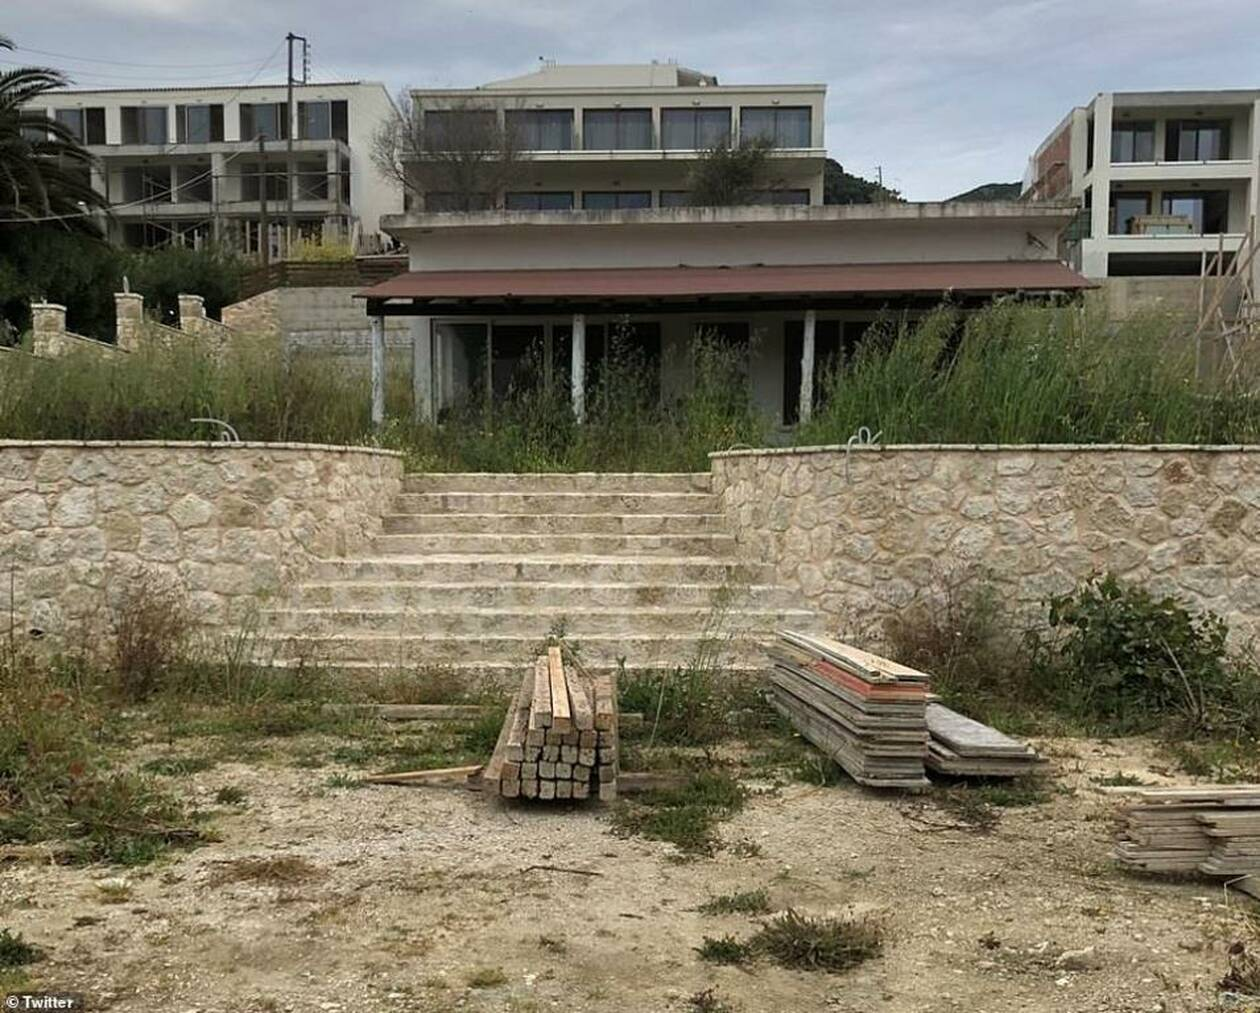 13143650-6996891-One_of_the_resort_s_many_unfinished_building_sites_surrounding_t-a-105_1557149405479.jpg